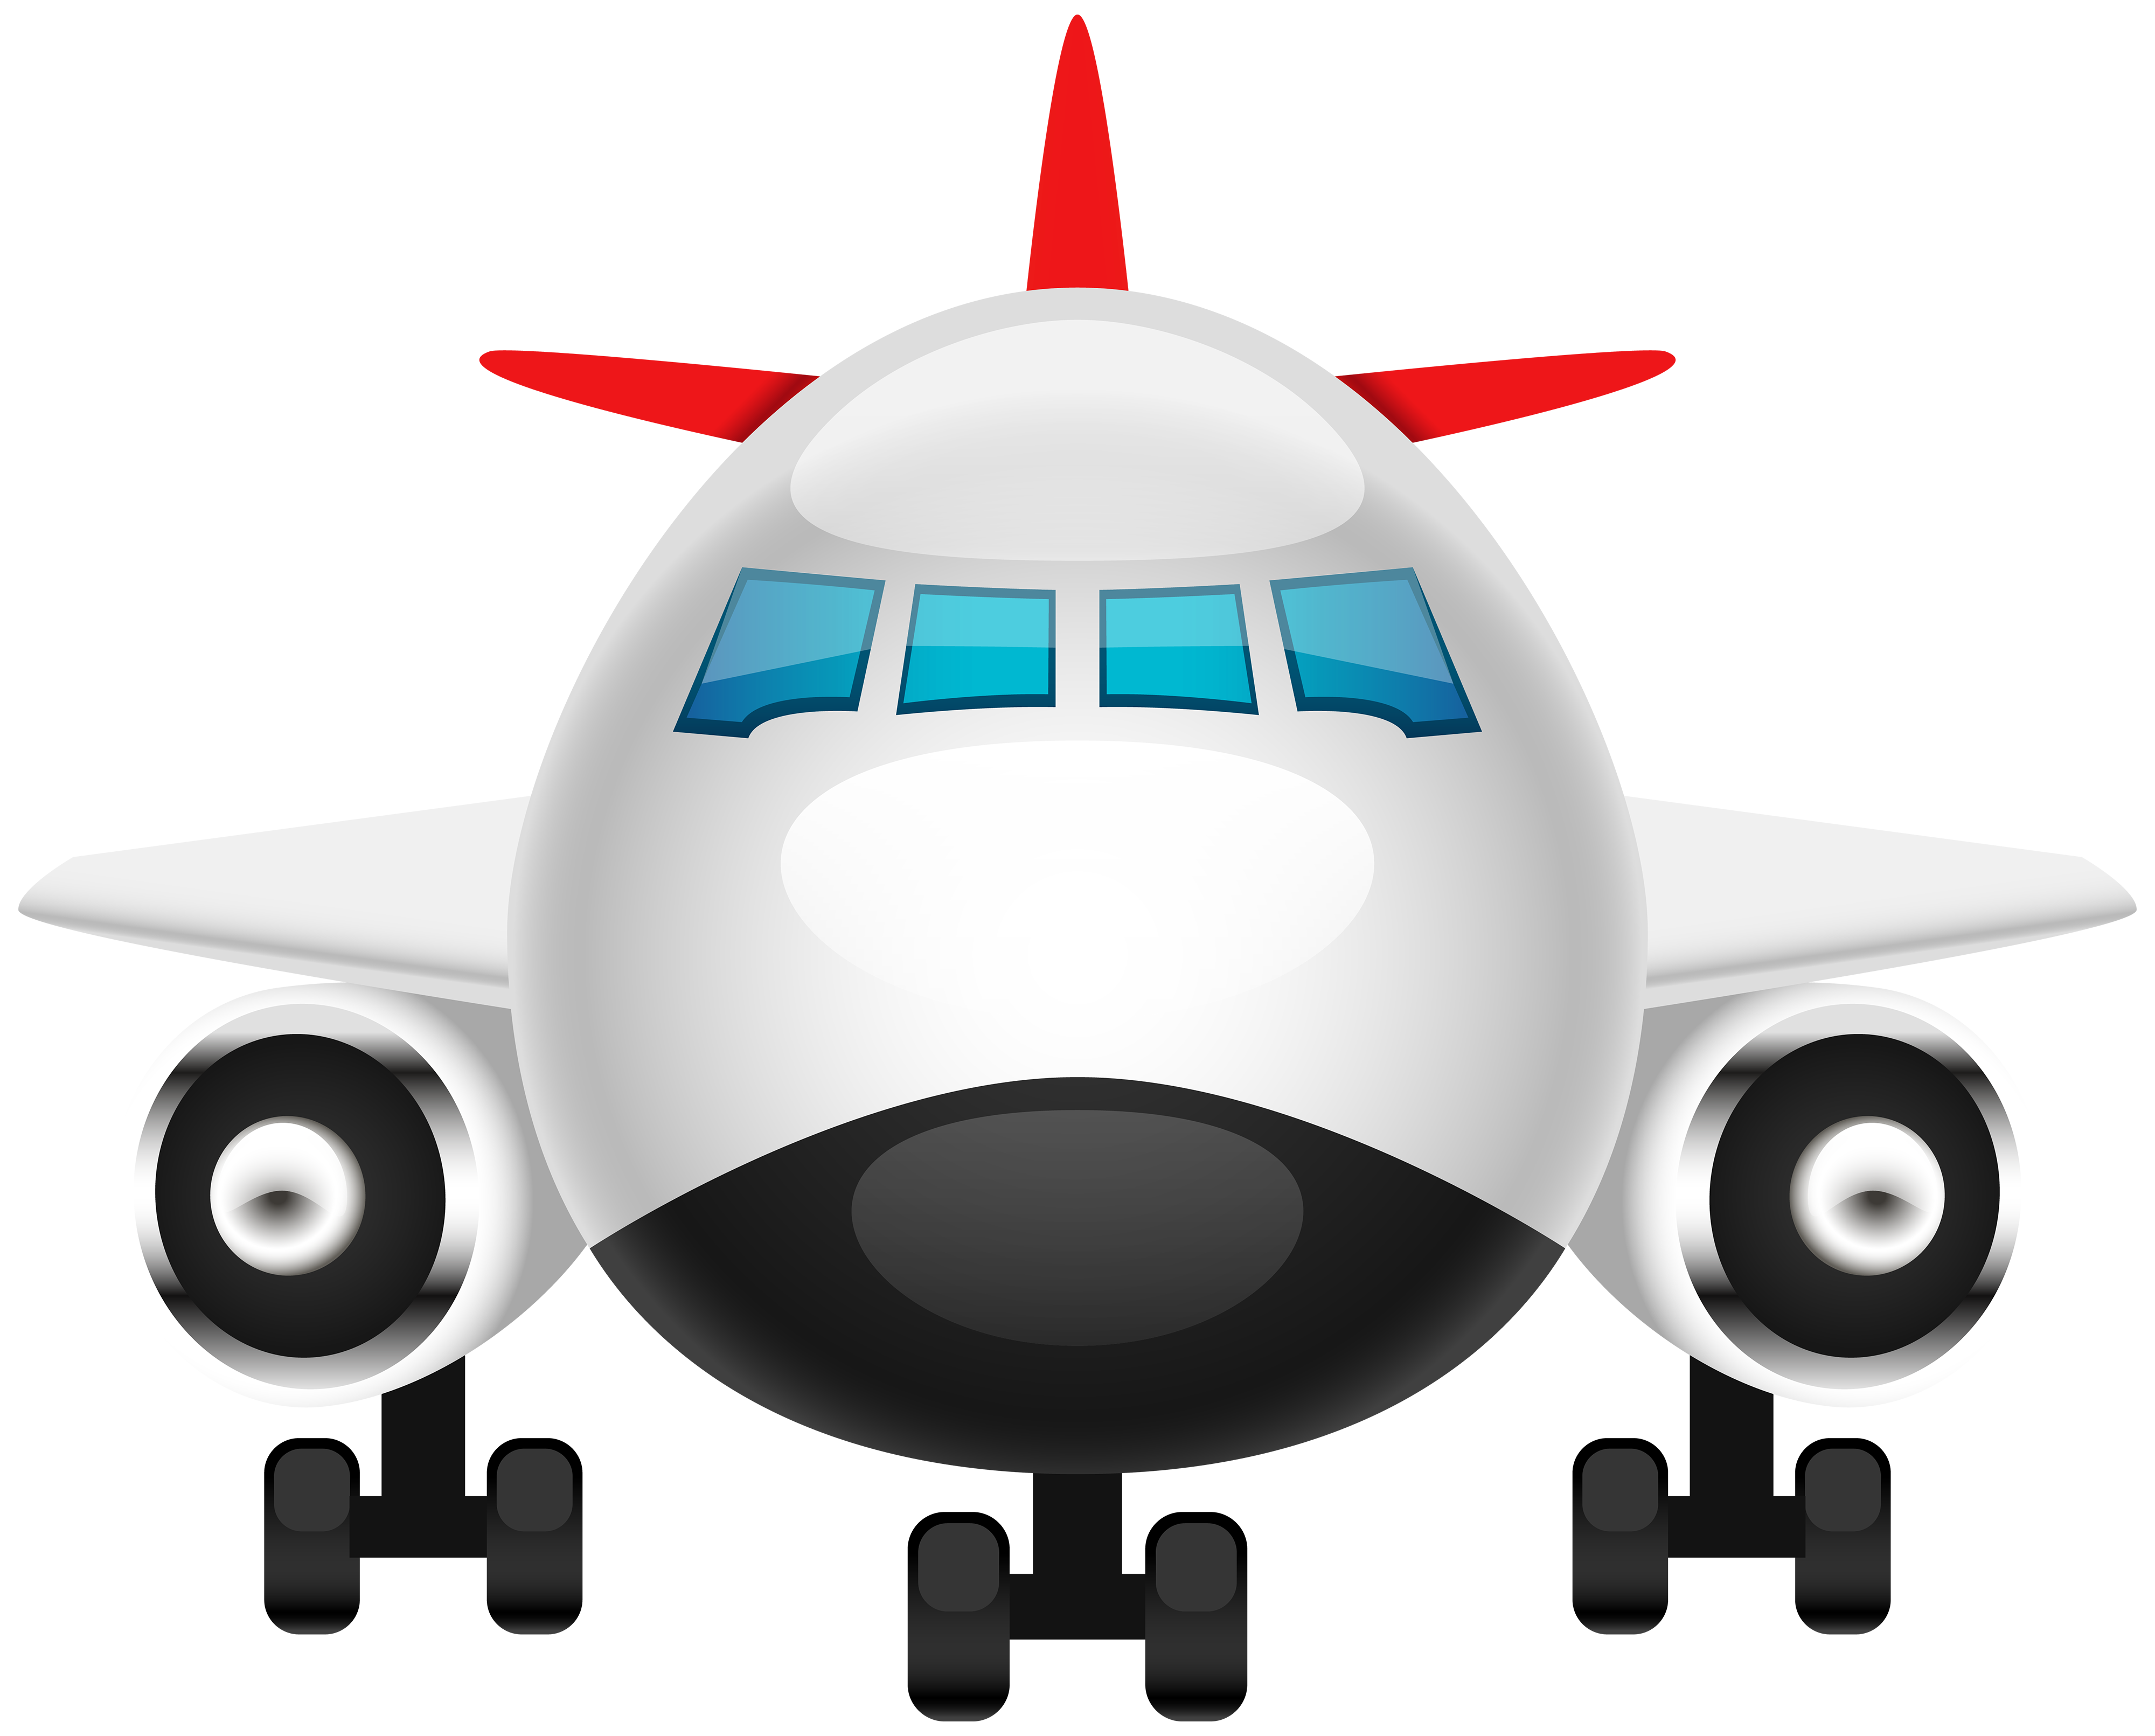 Plane clipart front jpg royalty free download Plane PNG Clipart - Best WEB Clipart jpg royalty free download